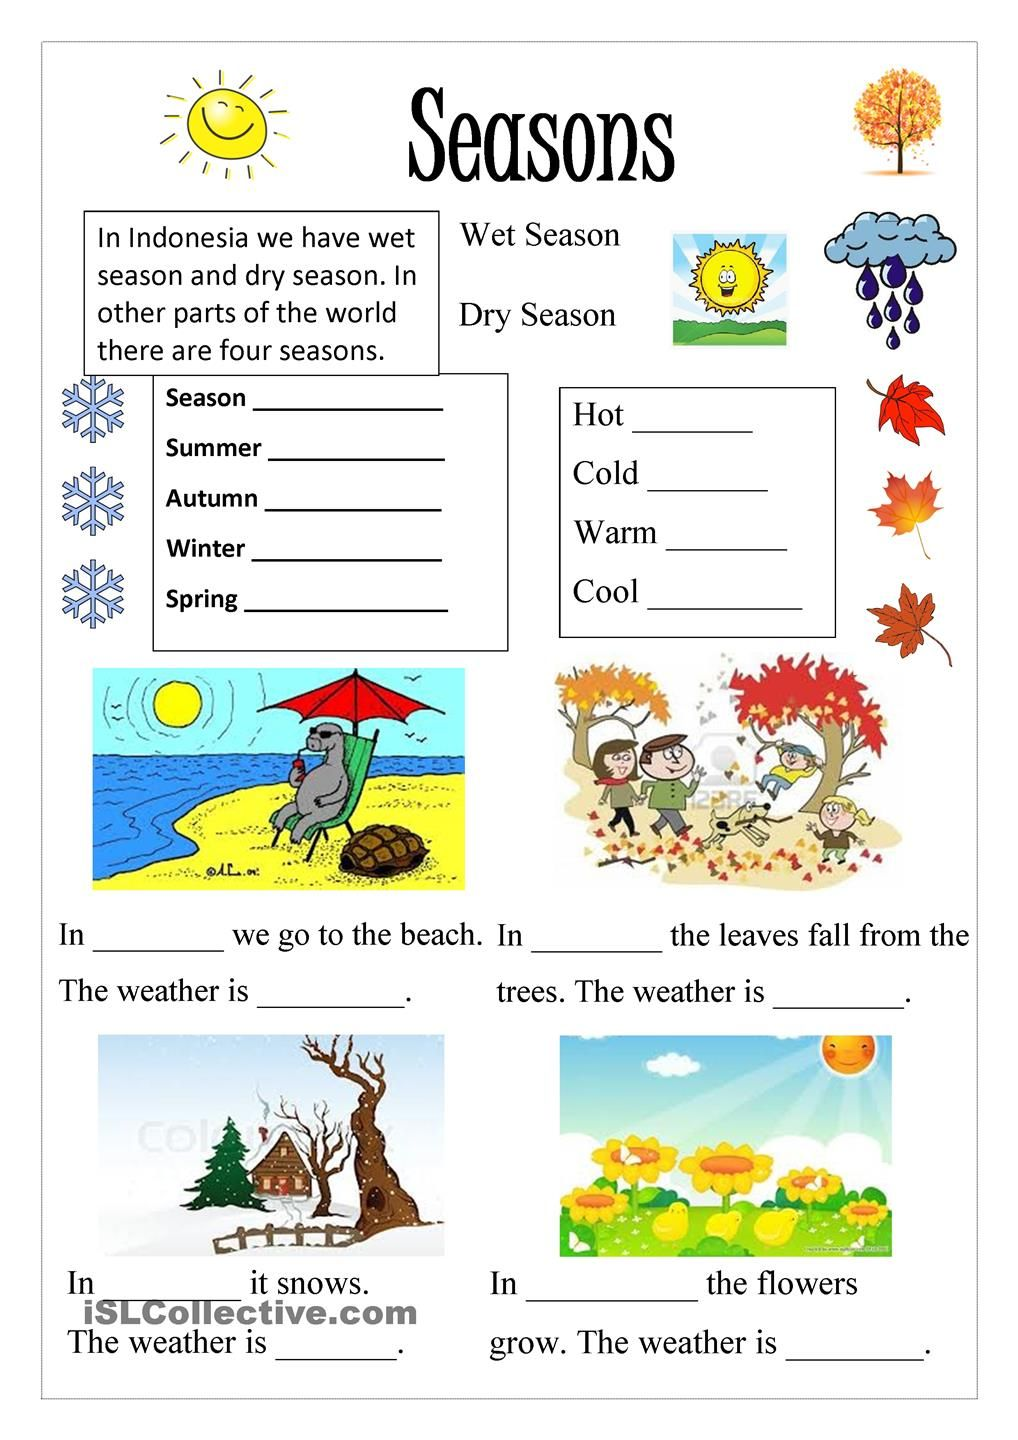 worksheet Seasons Worksheet seasons and clothes worksheet free esl printable worksheets made a asking for some simple vocabulary about giving sentence each season that they must fill in the gaps